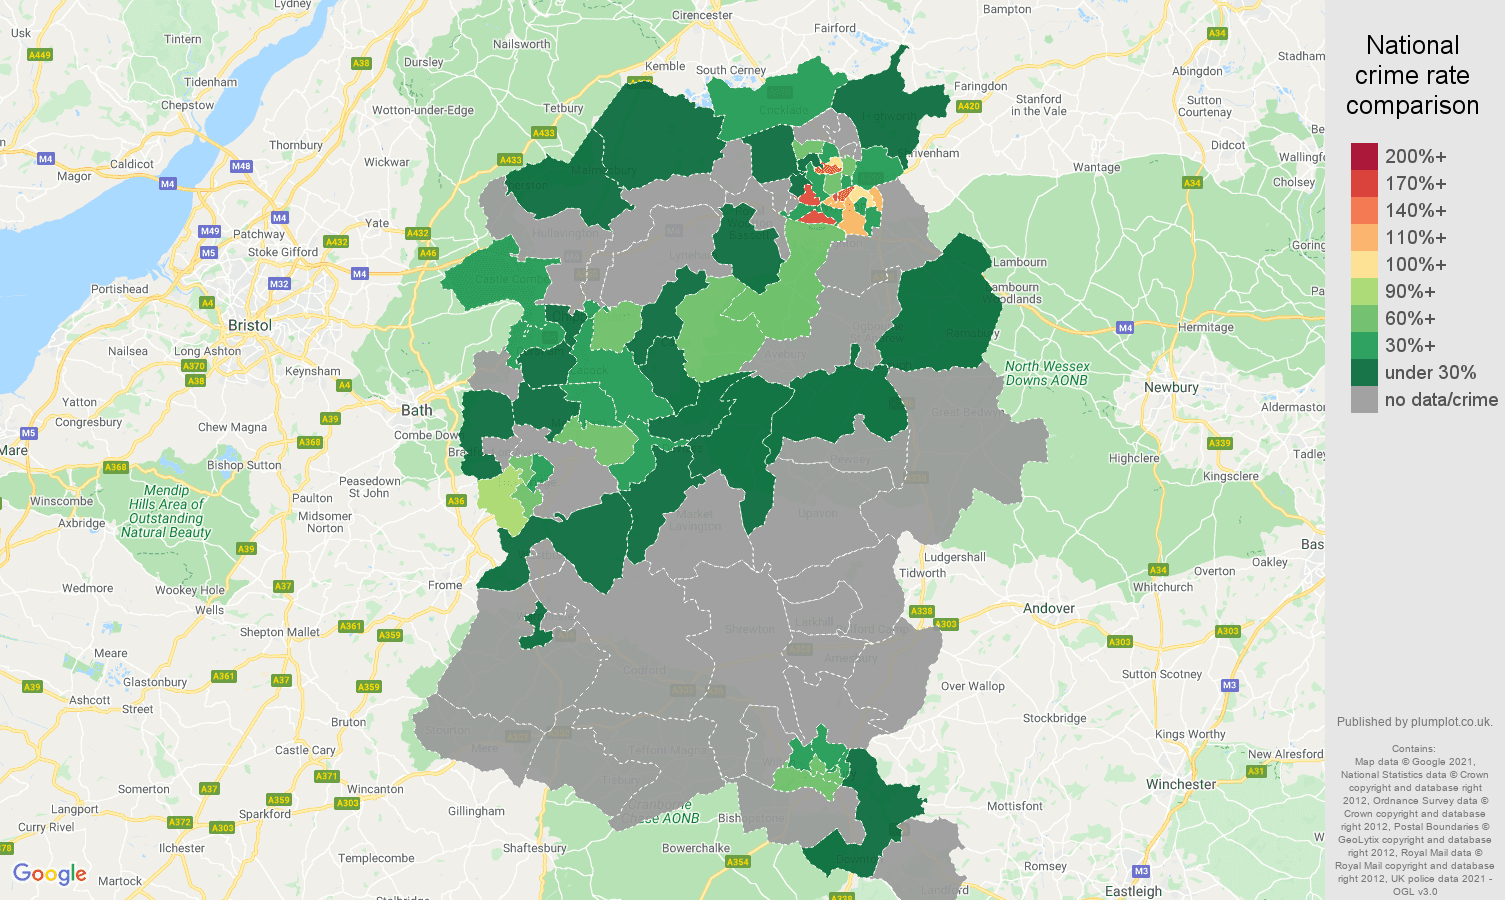 Wiltshire robbery crime rate comparison map